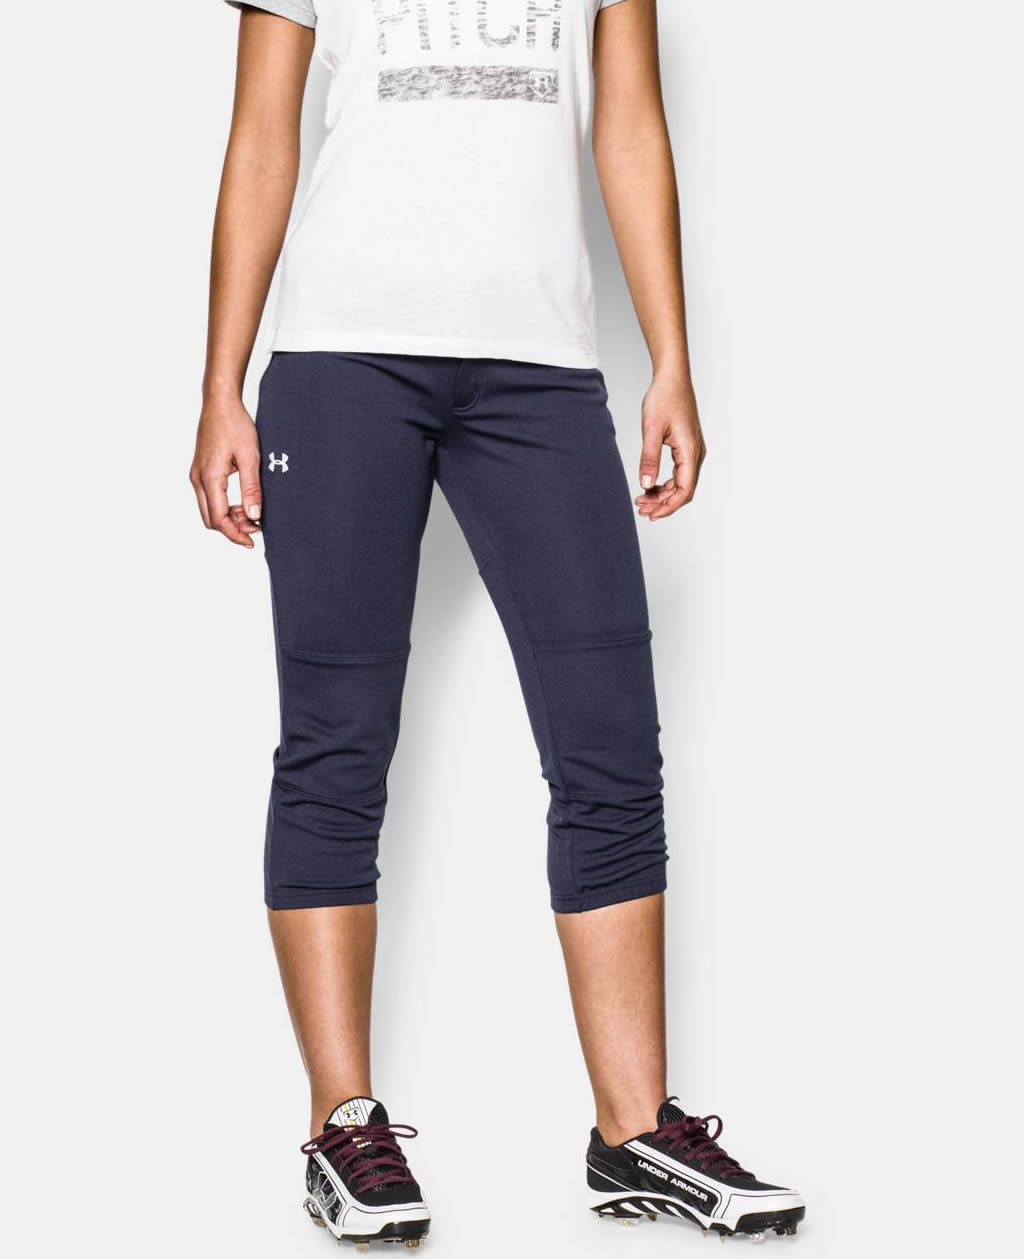 Navy Strike Zone Pant By Under Armour